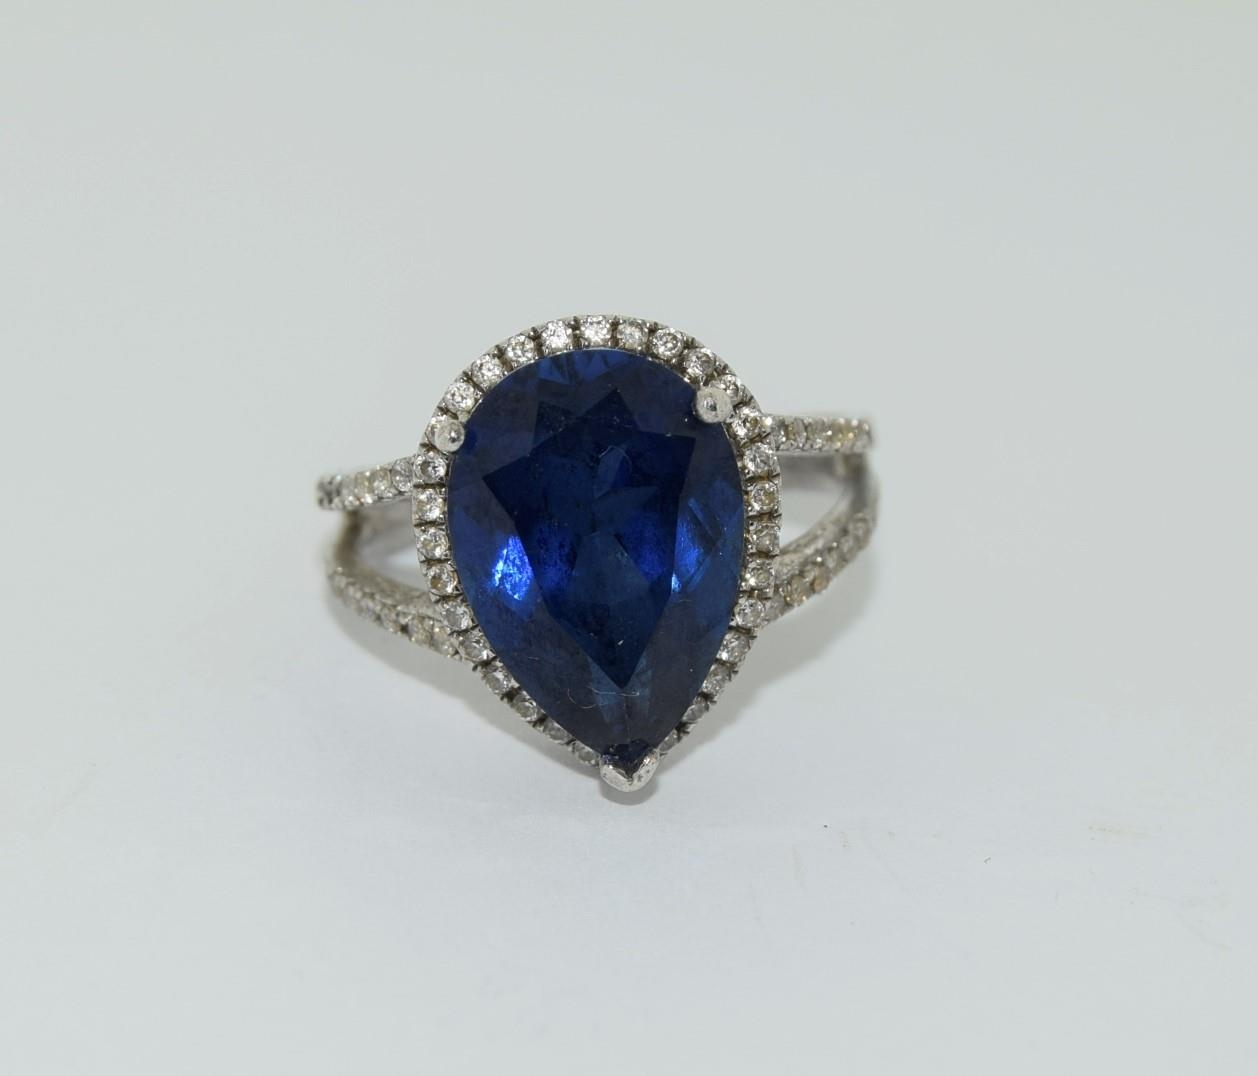 Silver ladies blue stone pear shape ring. Size K.